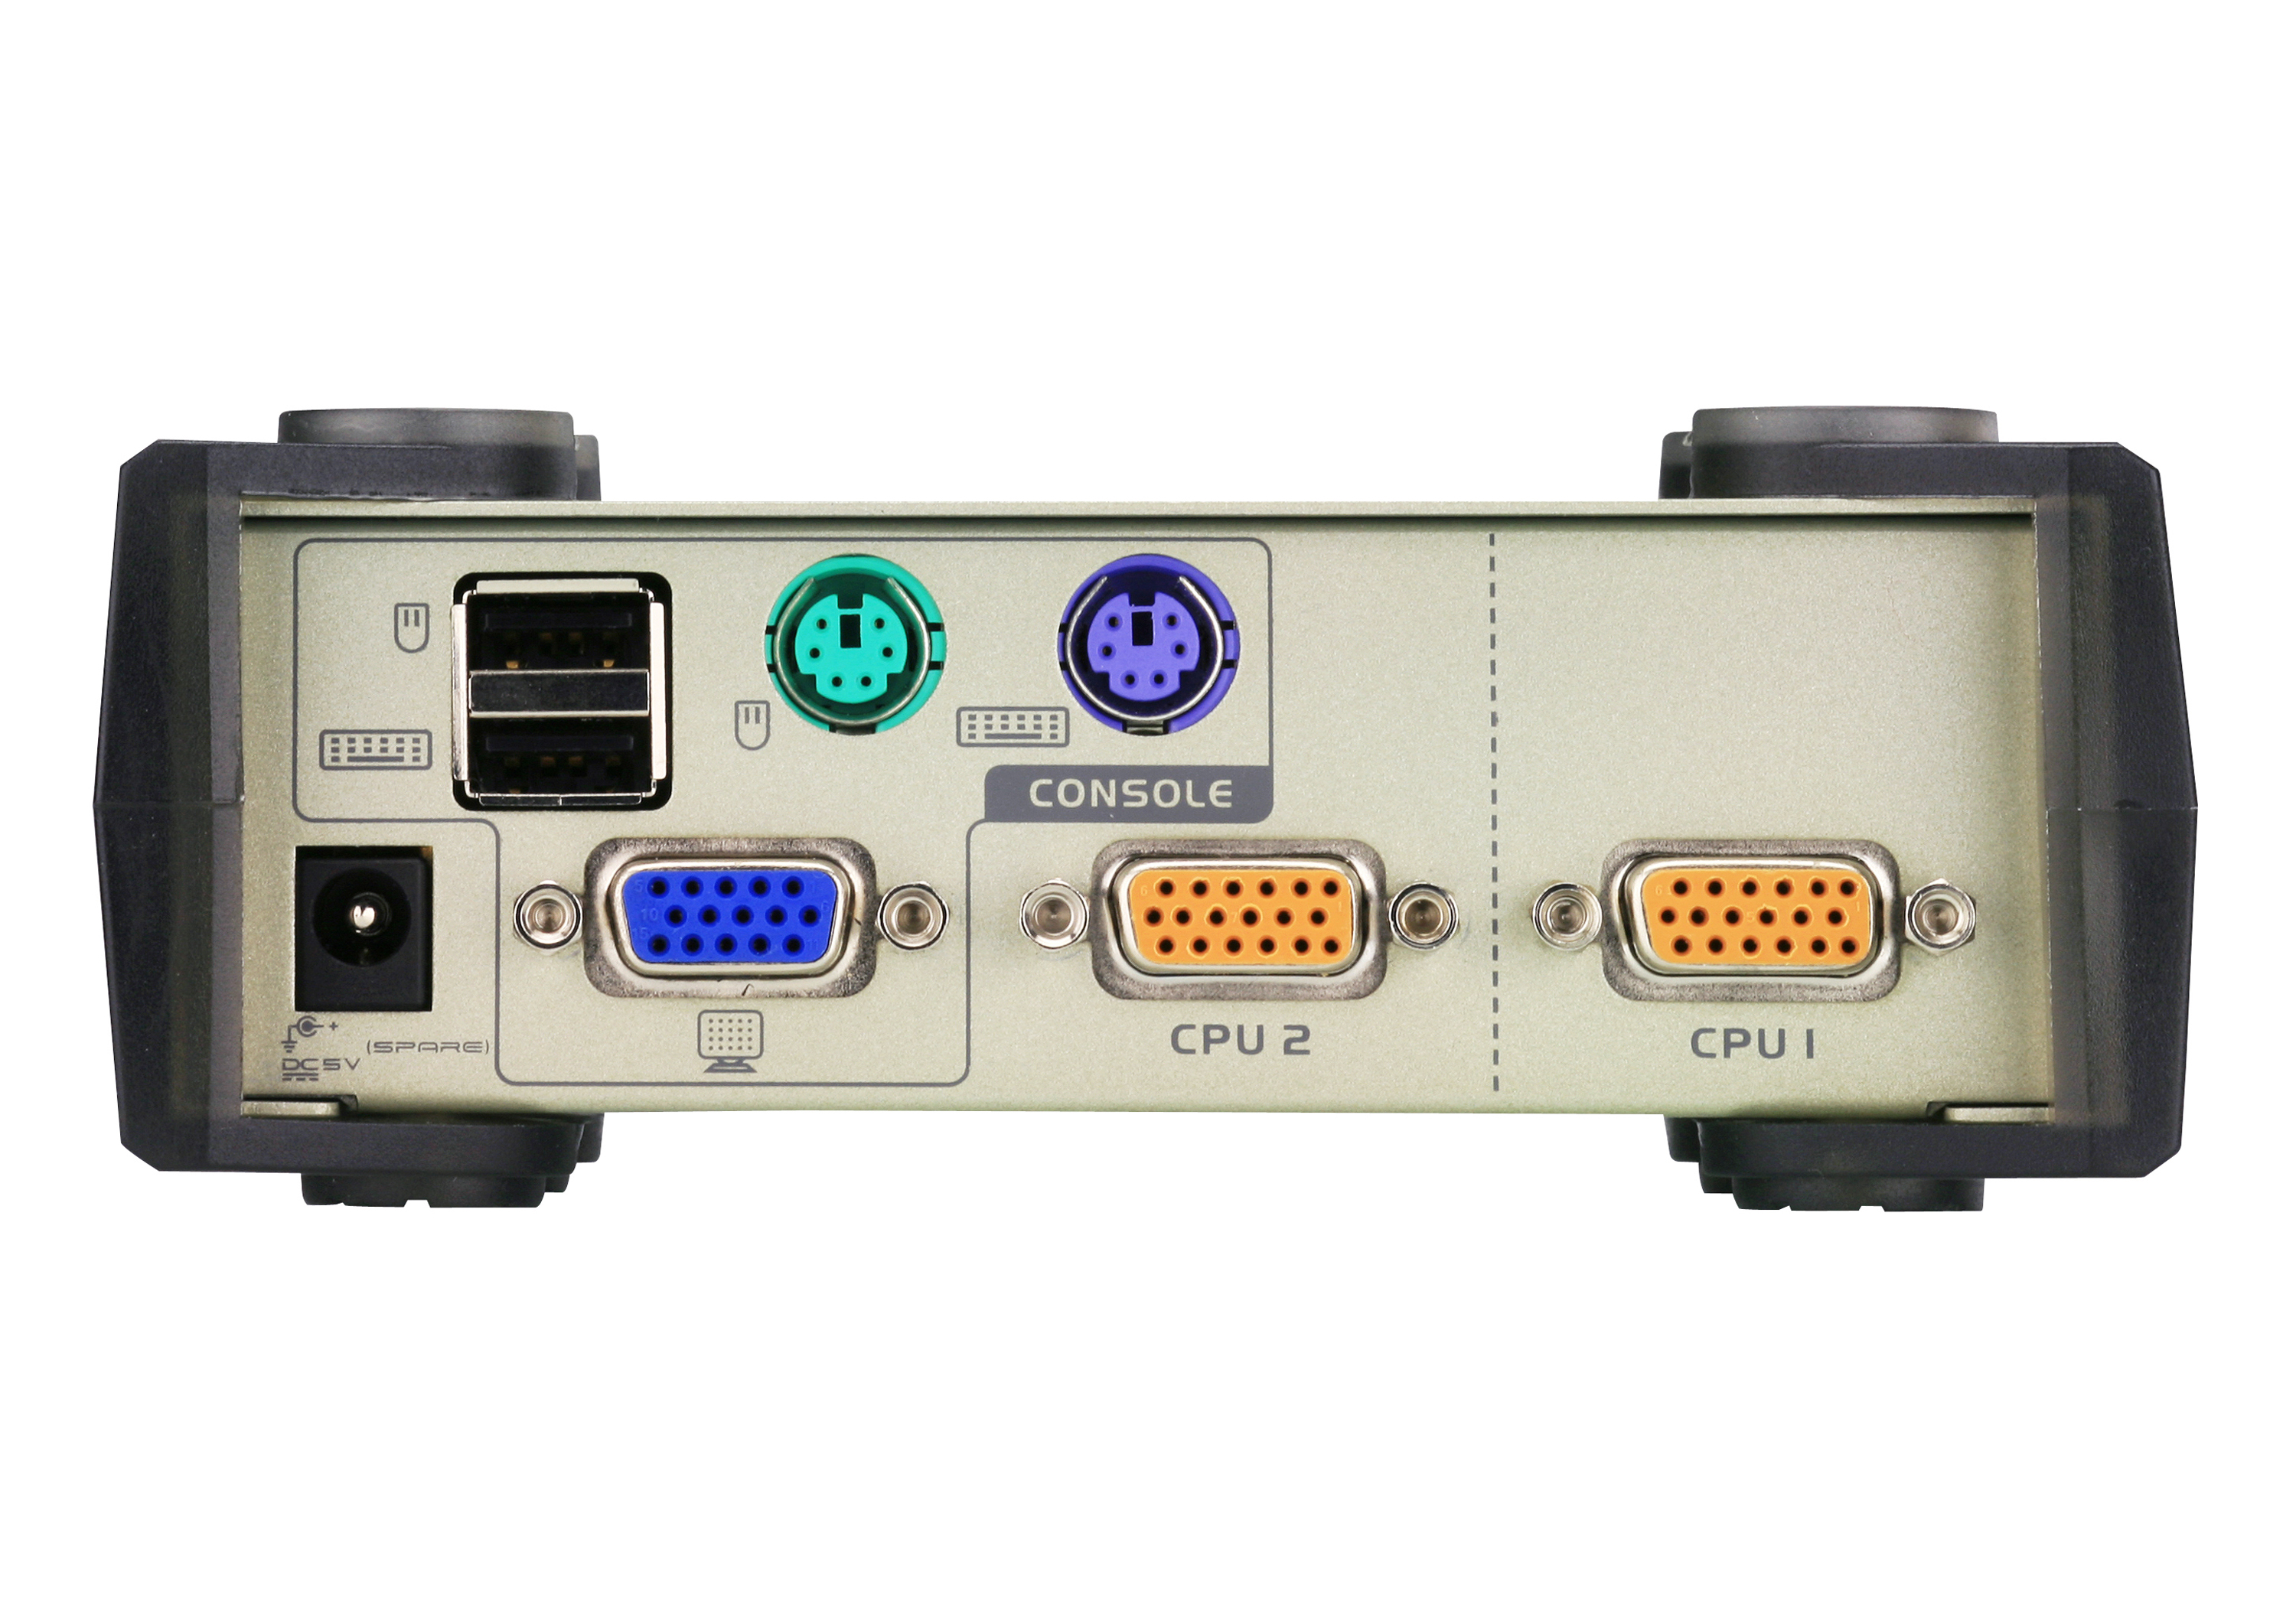 2-Port-PS/2-USB-VGA-KVM-Switch-2